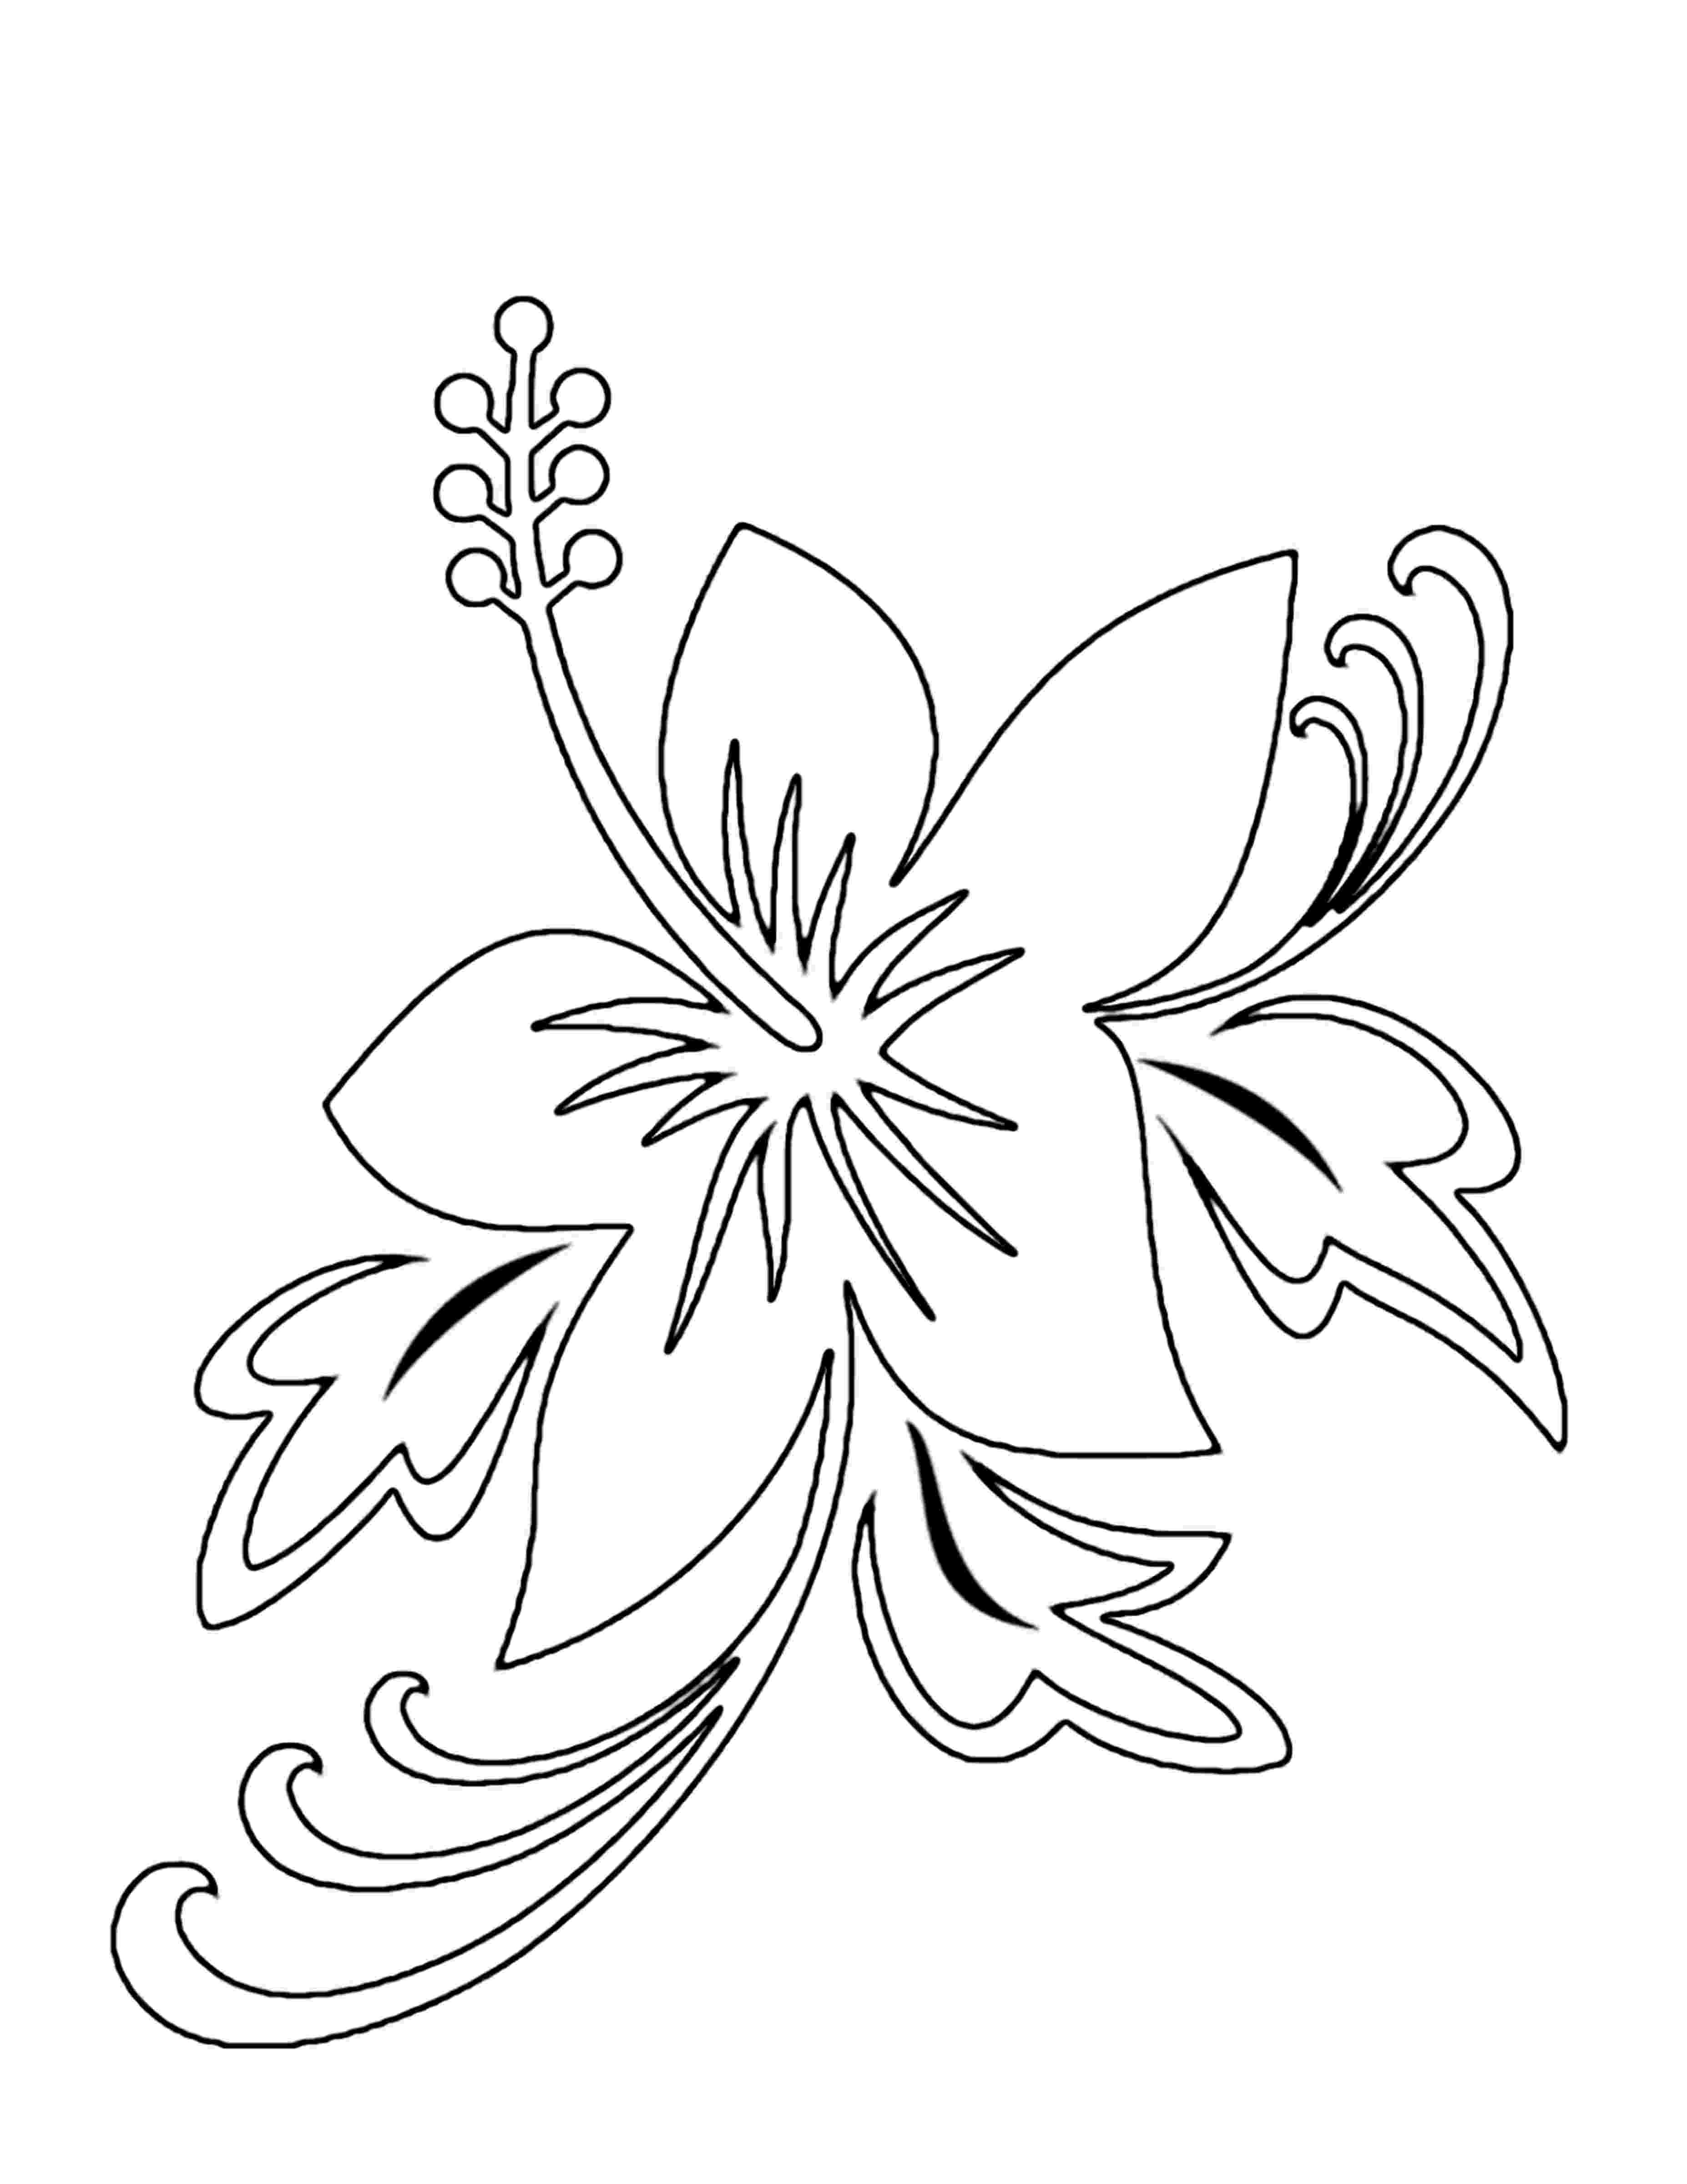 flower printable pictures free printable flower coloring pages for kids best printable pictures flower 1 1